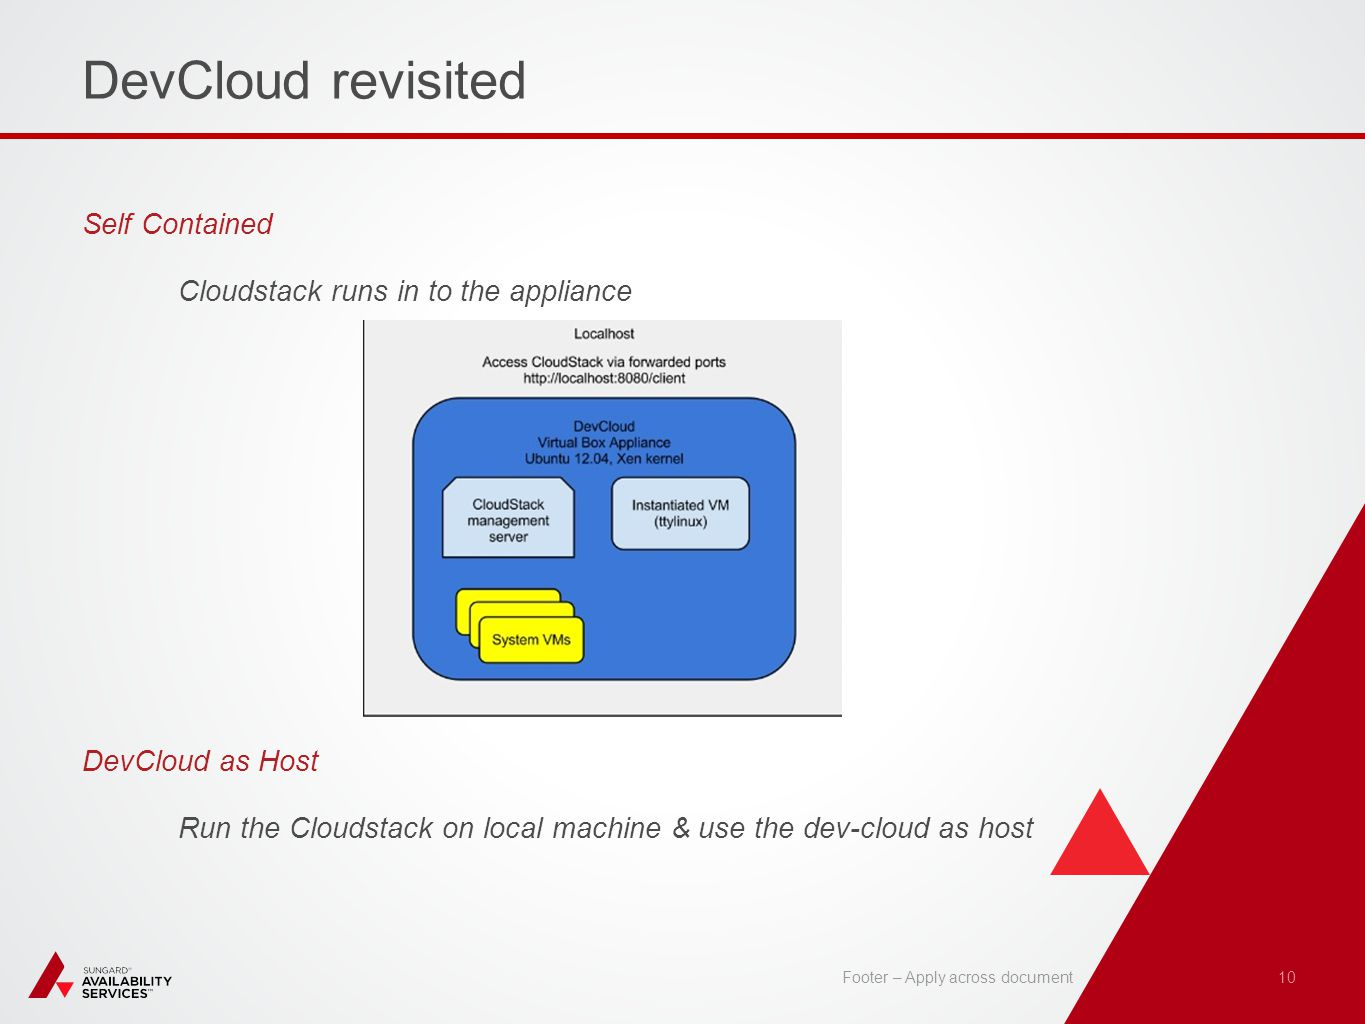 DevCloud revisited Self Contained Cloudstack runs in to the appliance DevCloud as Host Run the Cloudstack on local machine & use the dev-cloud as host 10 Footer – Apply across document